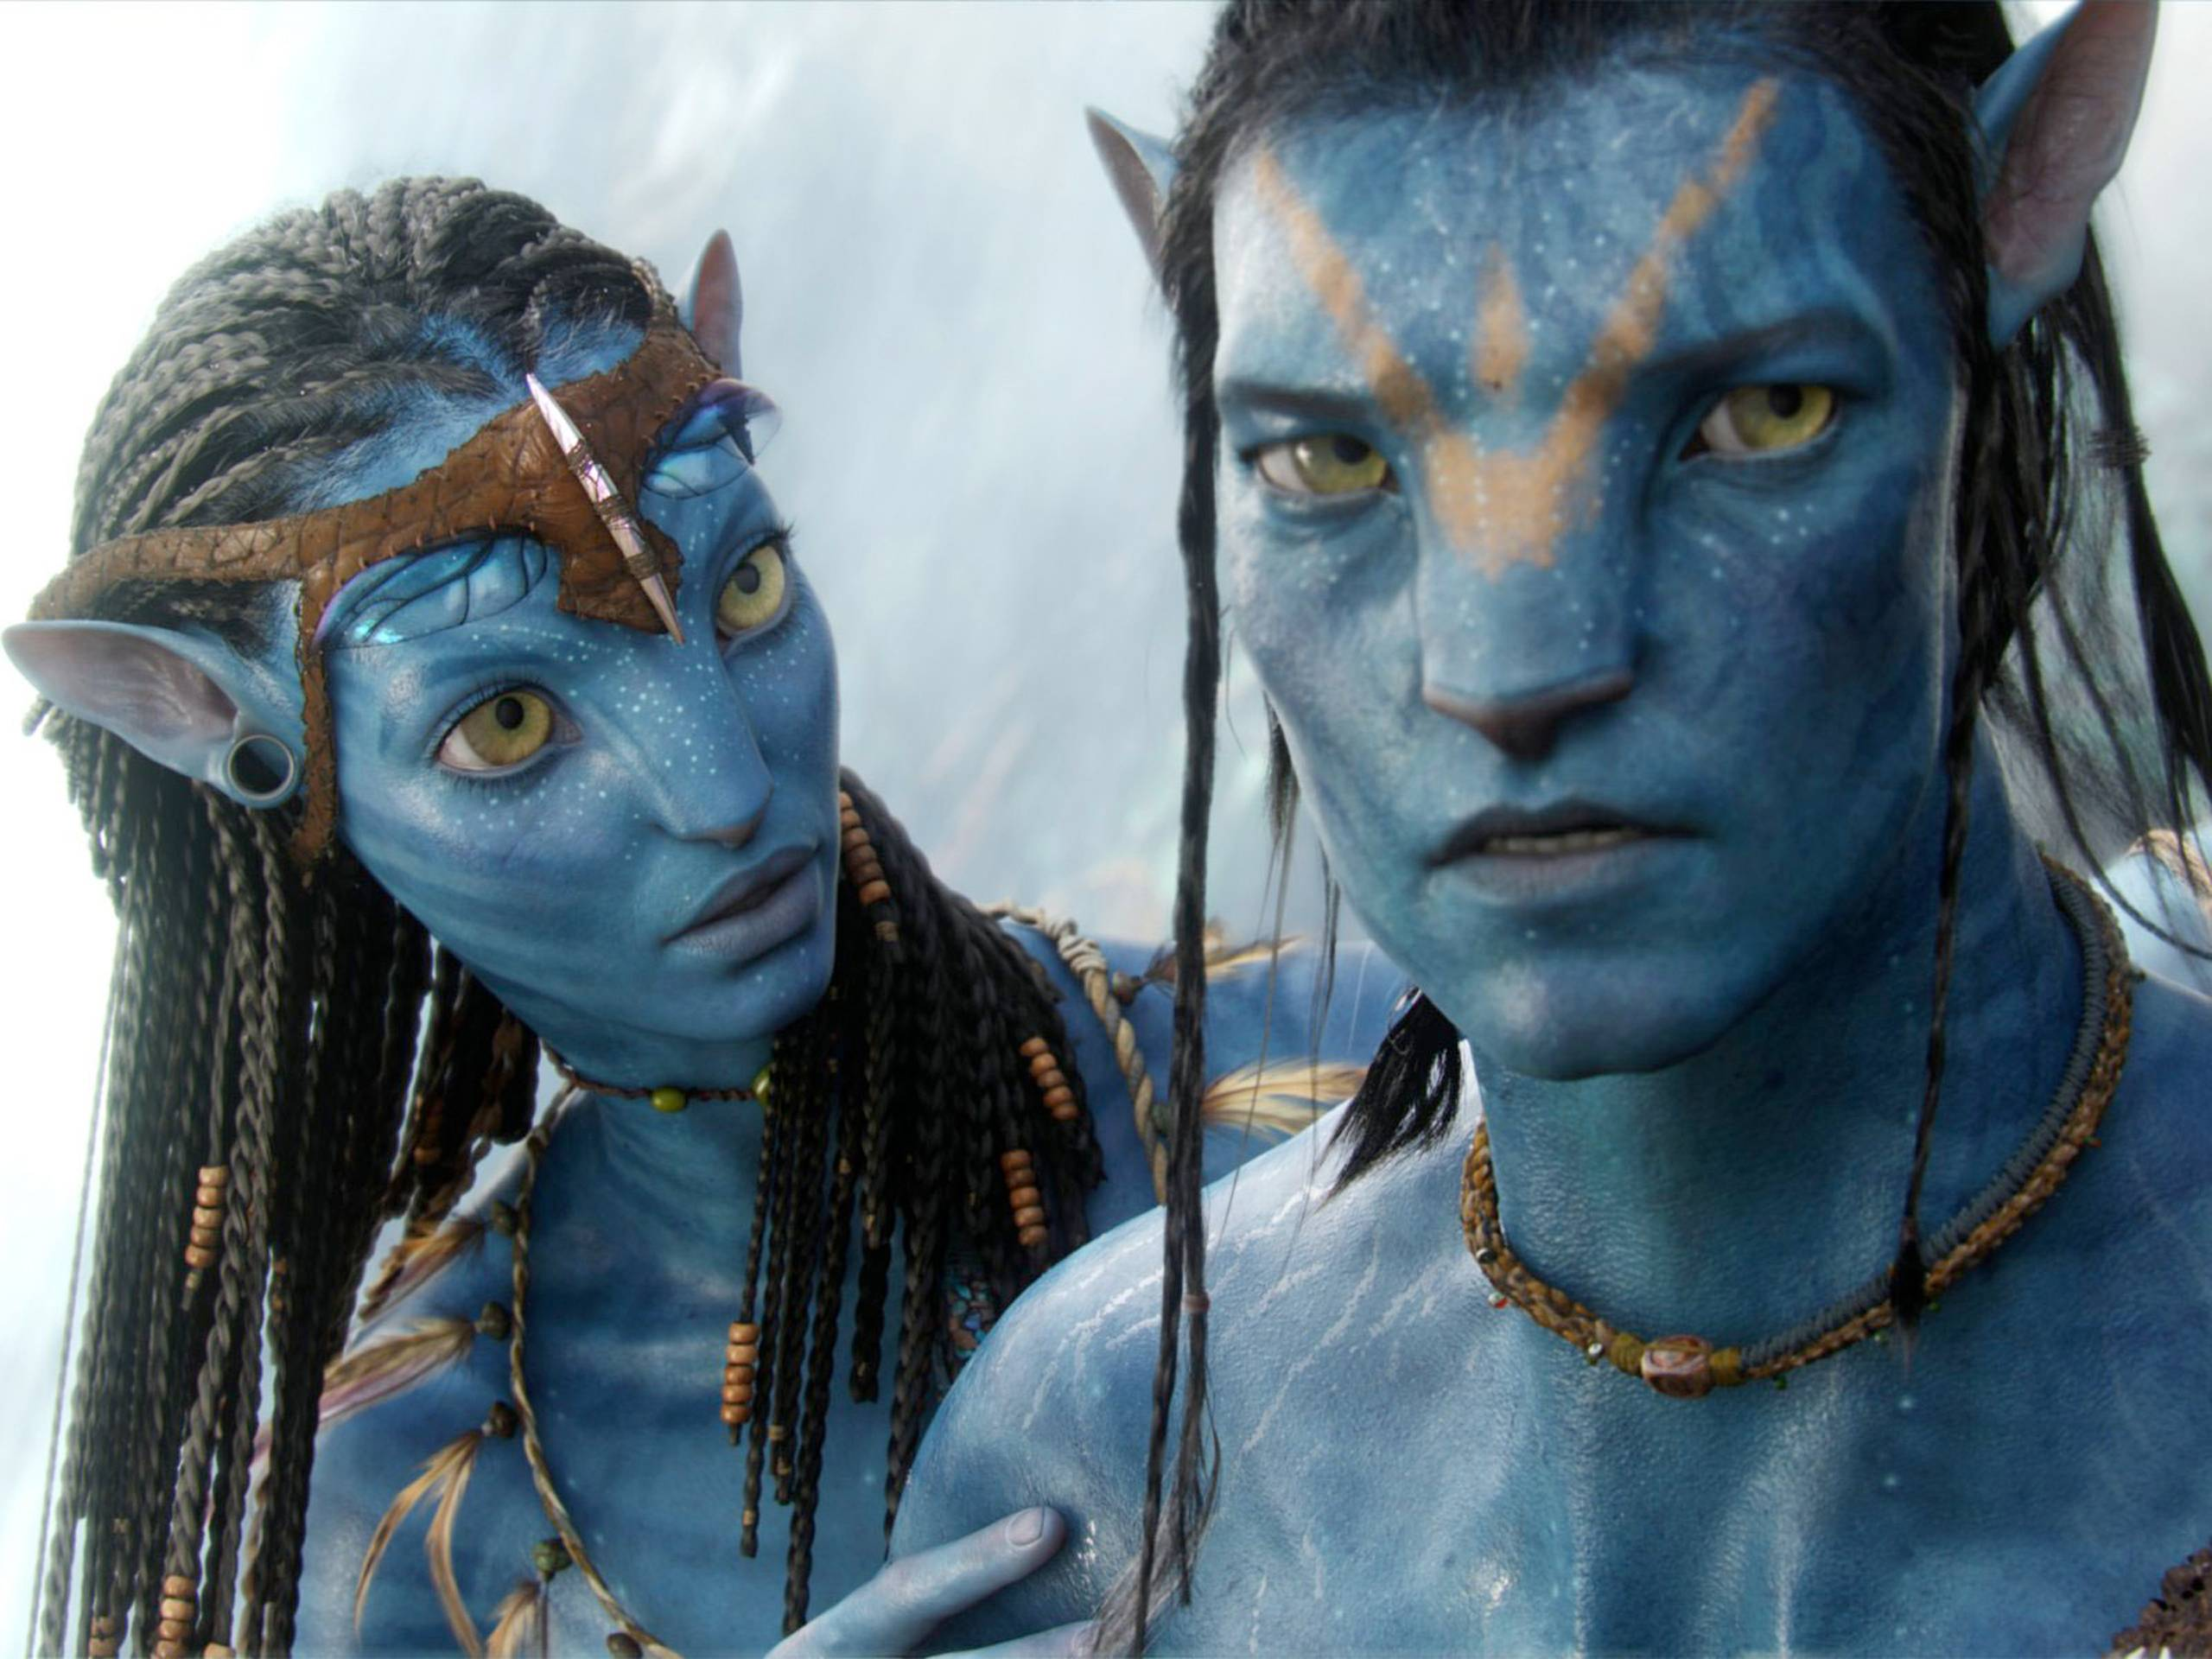 Avatar TheWallpapers | Free Desktop Wallpapers for HD, Widescreen ...